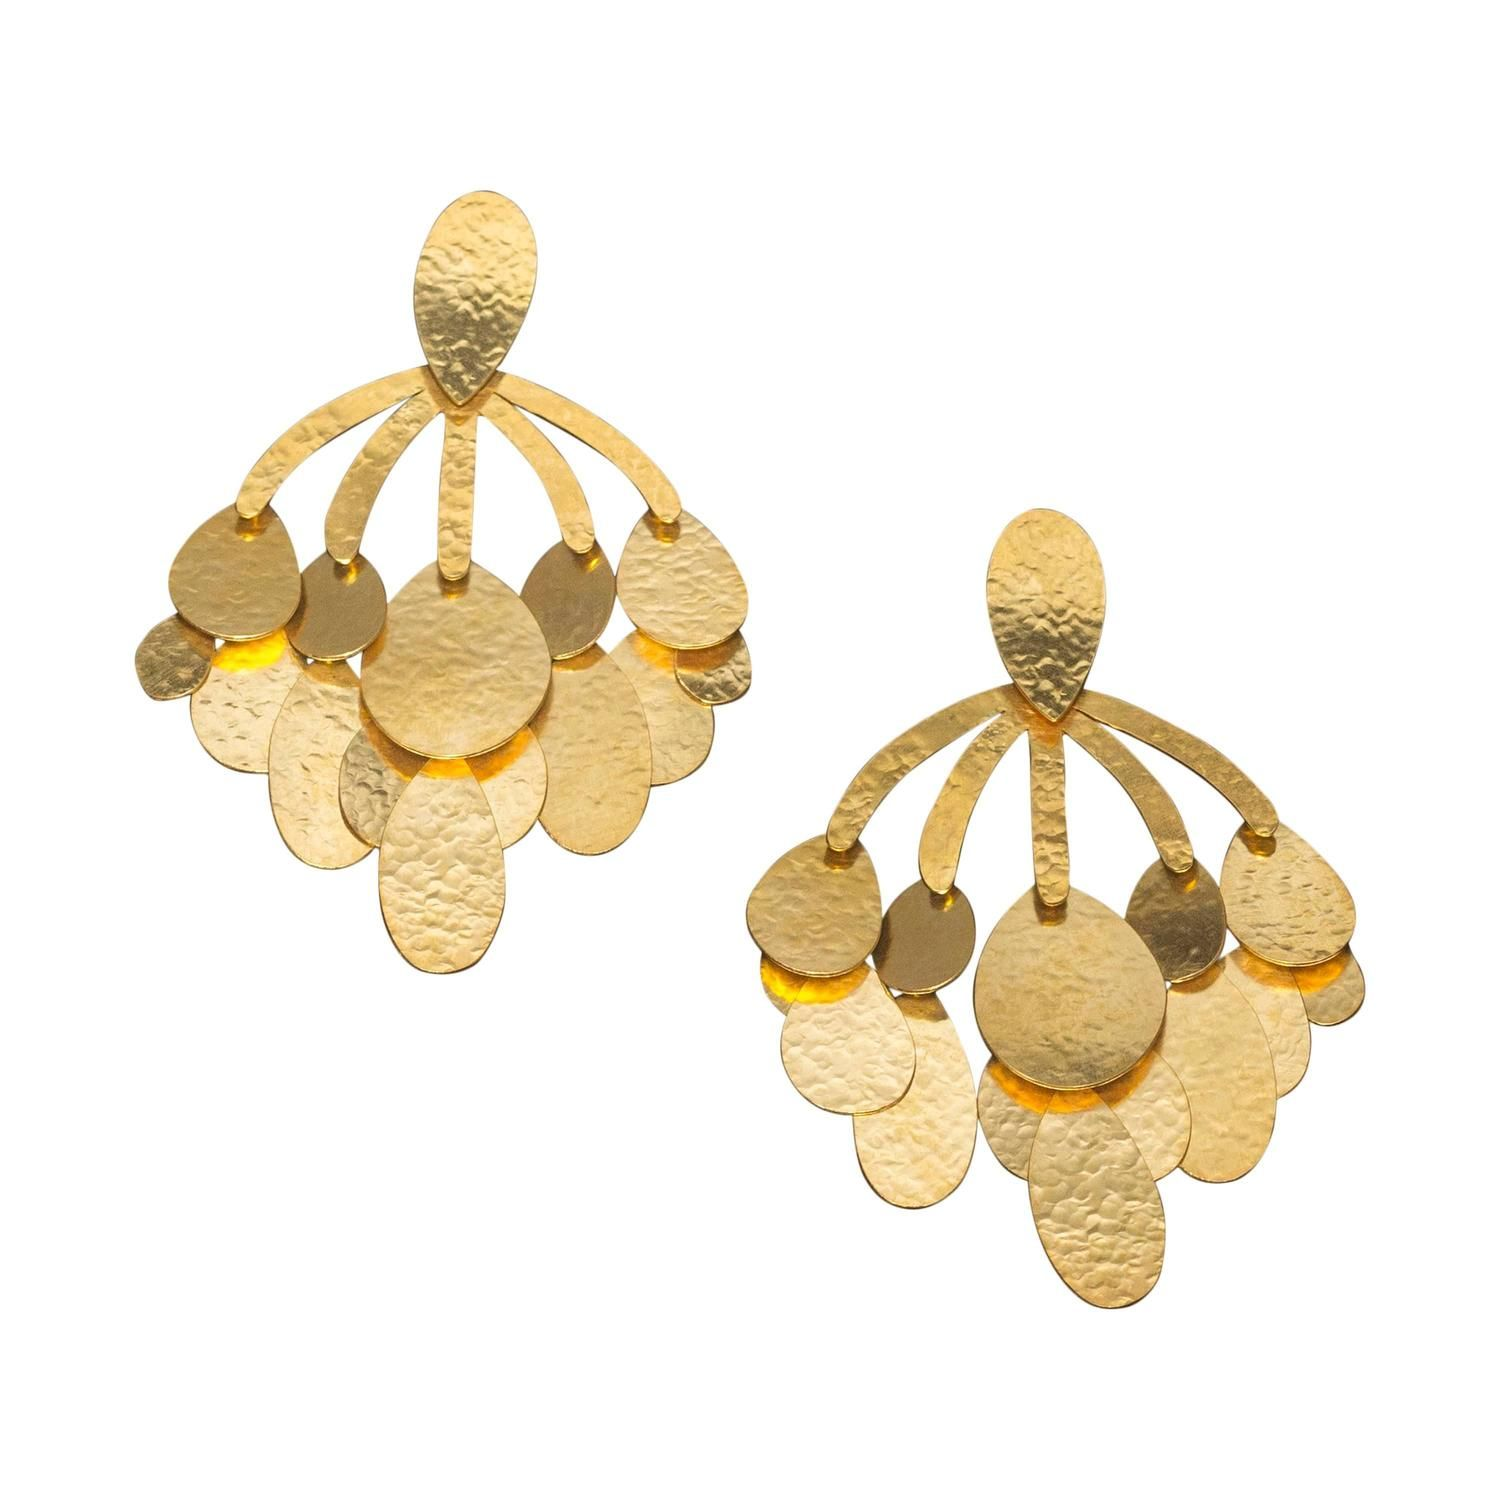 Herve Van Der Straeten Oversized Clip Earrings – Oversized Chandelier Earrings